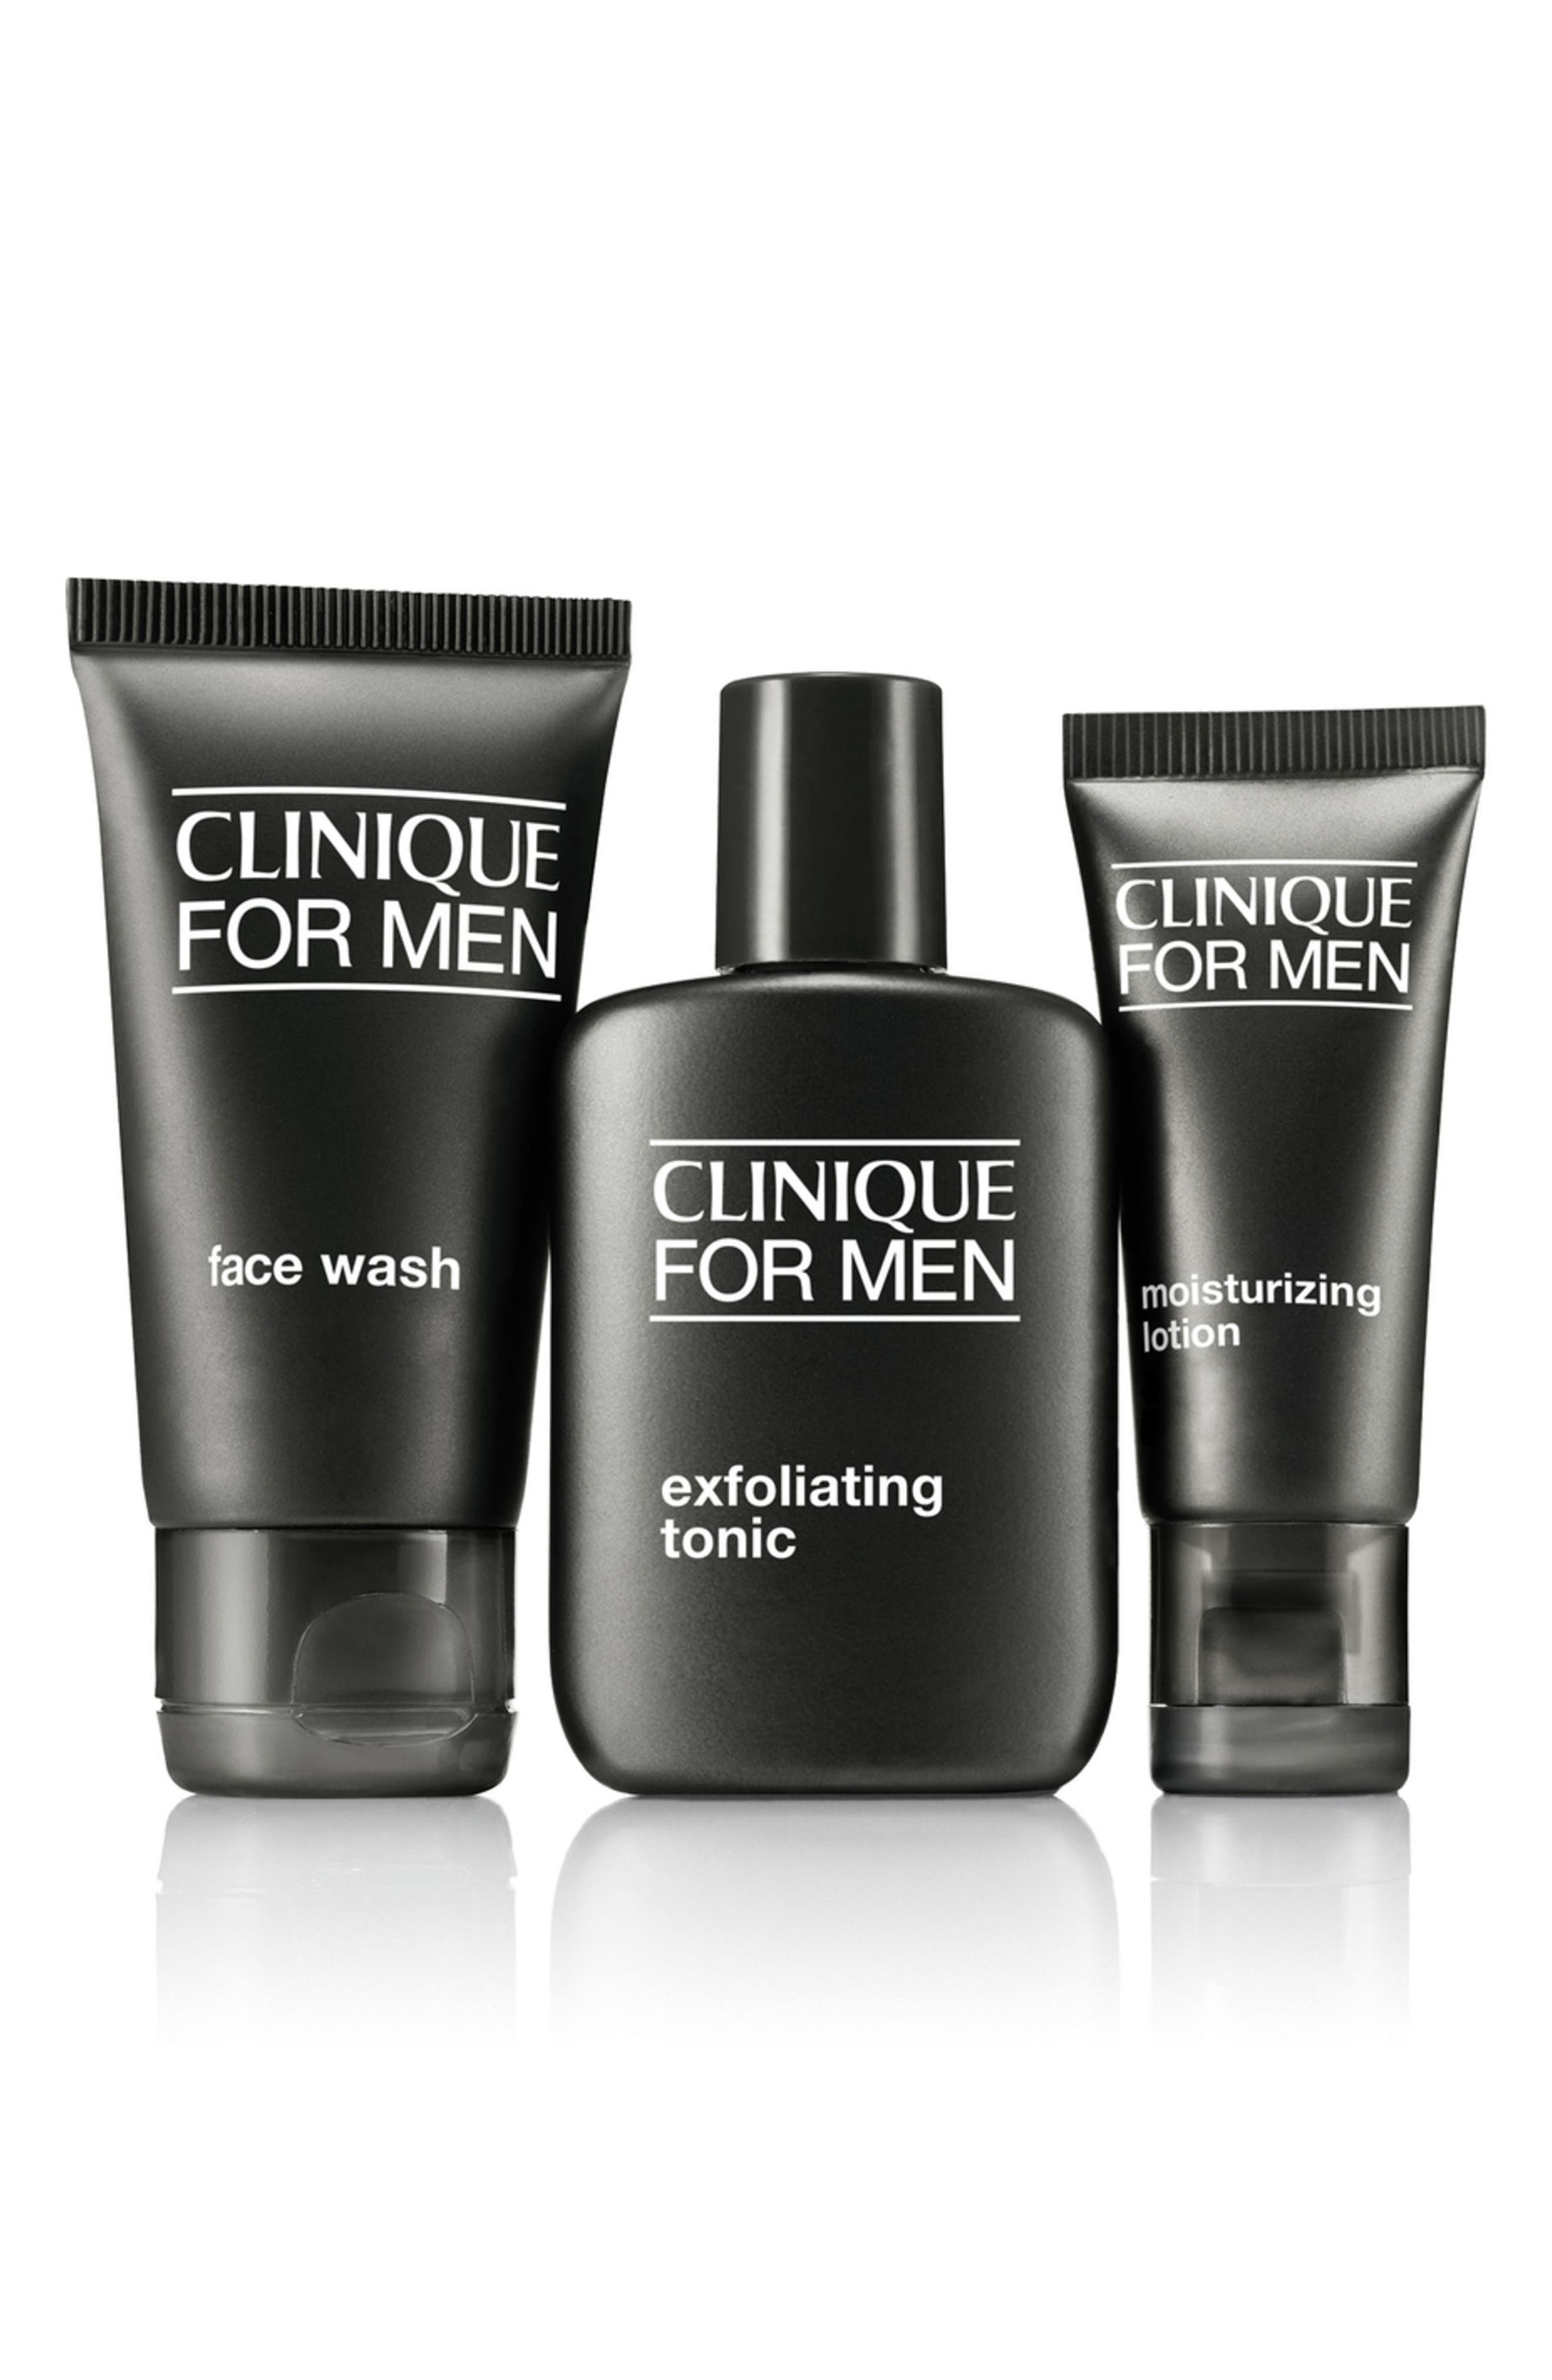 CLINIQUE, for Men Face Wash, Alternate thumbnail 2, color, NO COLOR